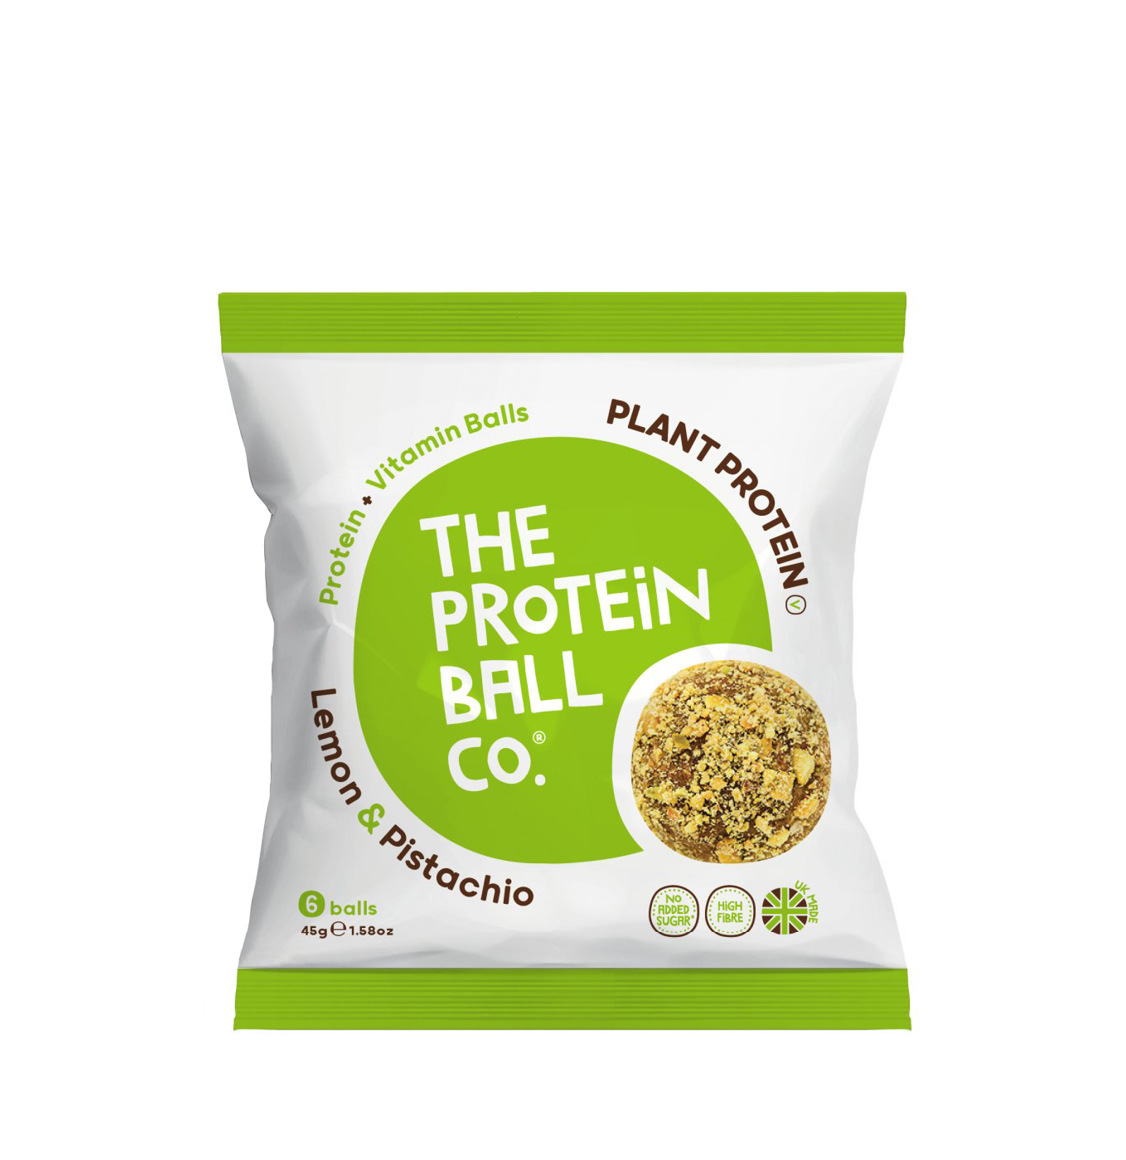 The Protein Ball Co. Lemon And Pistachio Plant Protein Vegan Balls 45g